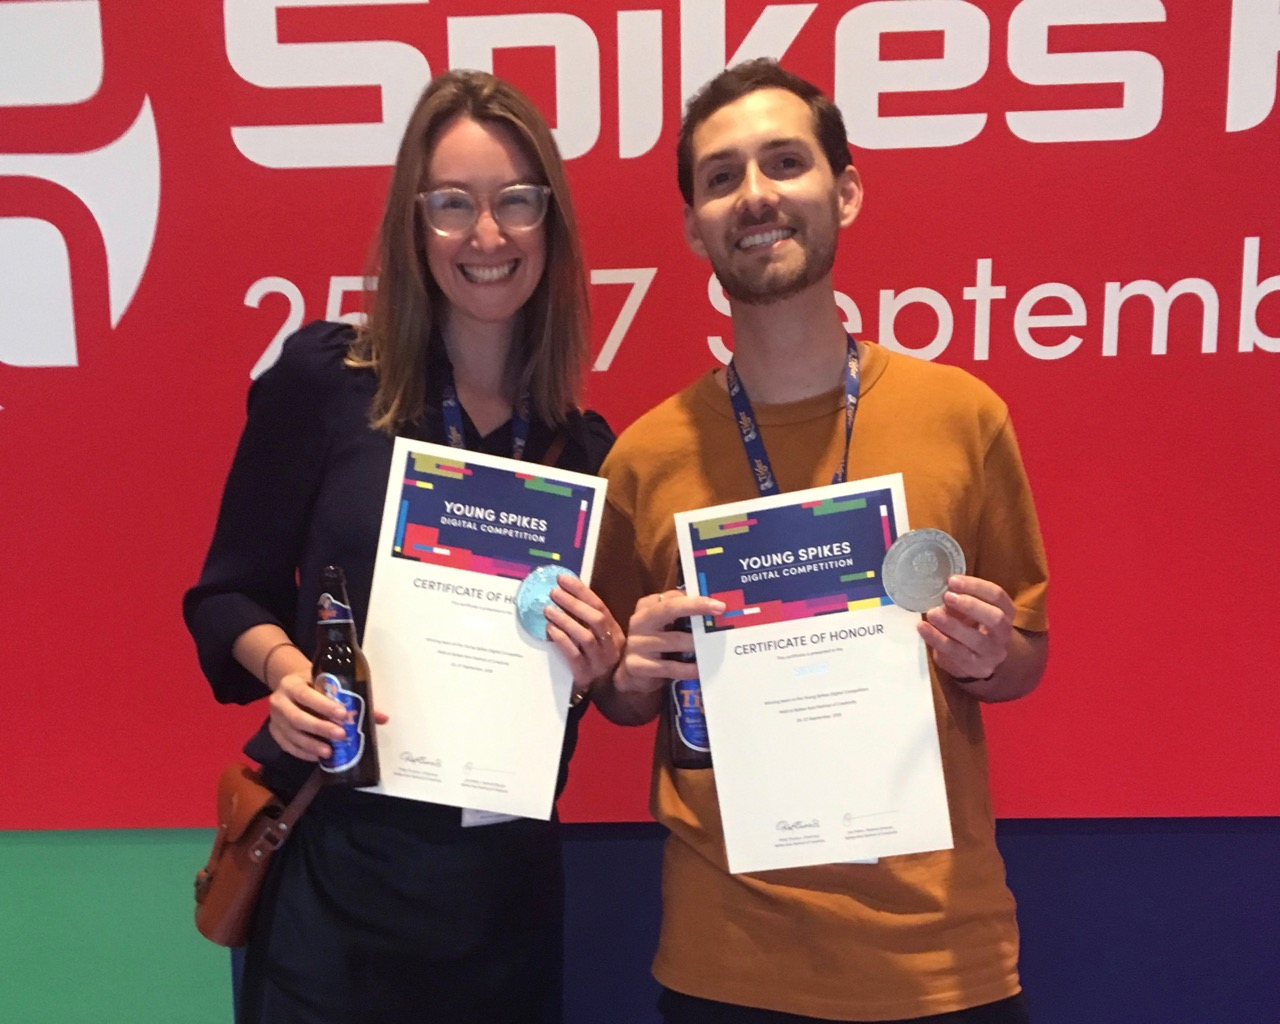 BWM Dentsu's Rosie Double and Scott Pritchett score Silver in Young Spikes Digital competition